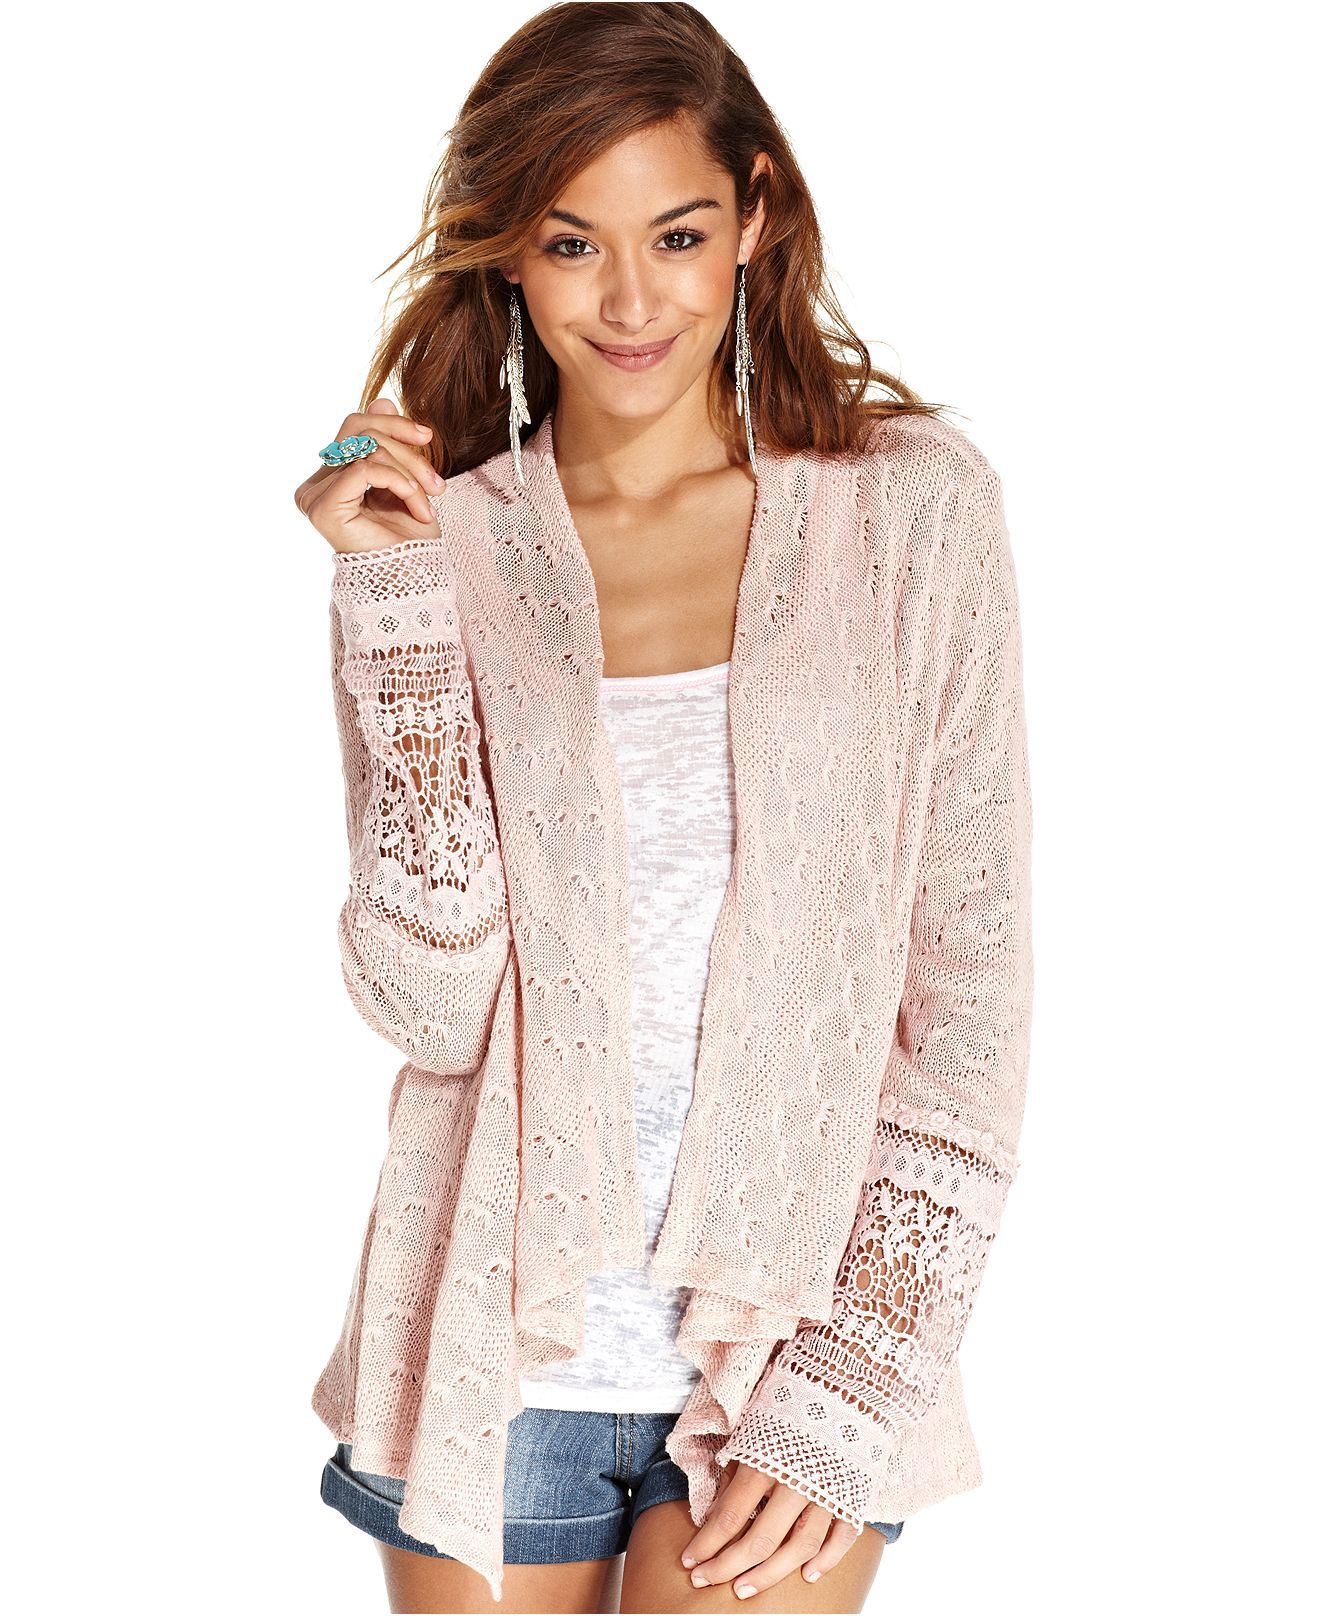 777f3b4036 American Rag Open-Front Cardigan - Juniors Sweaters - Macy s ...